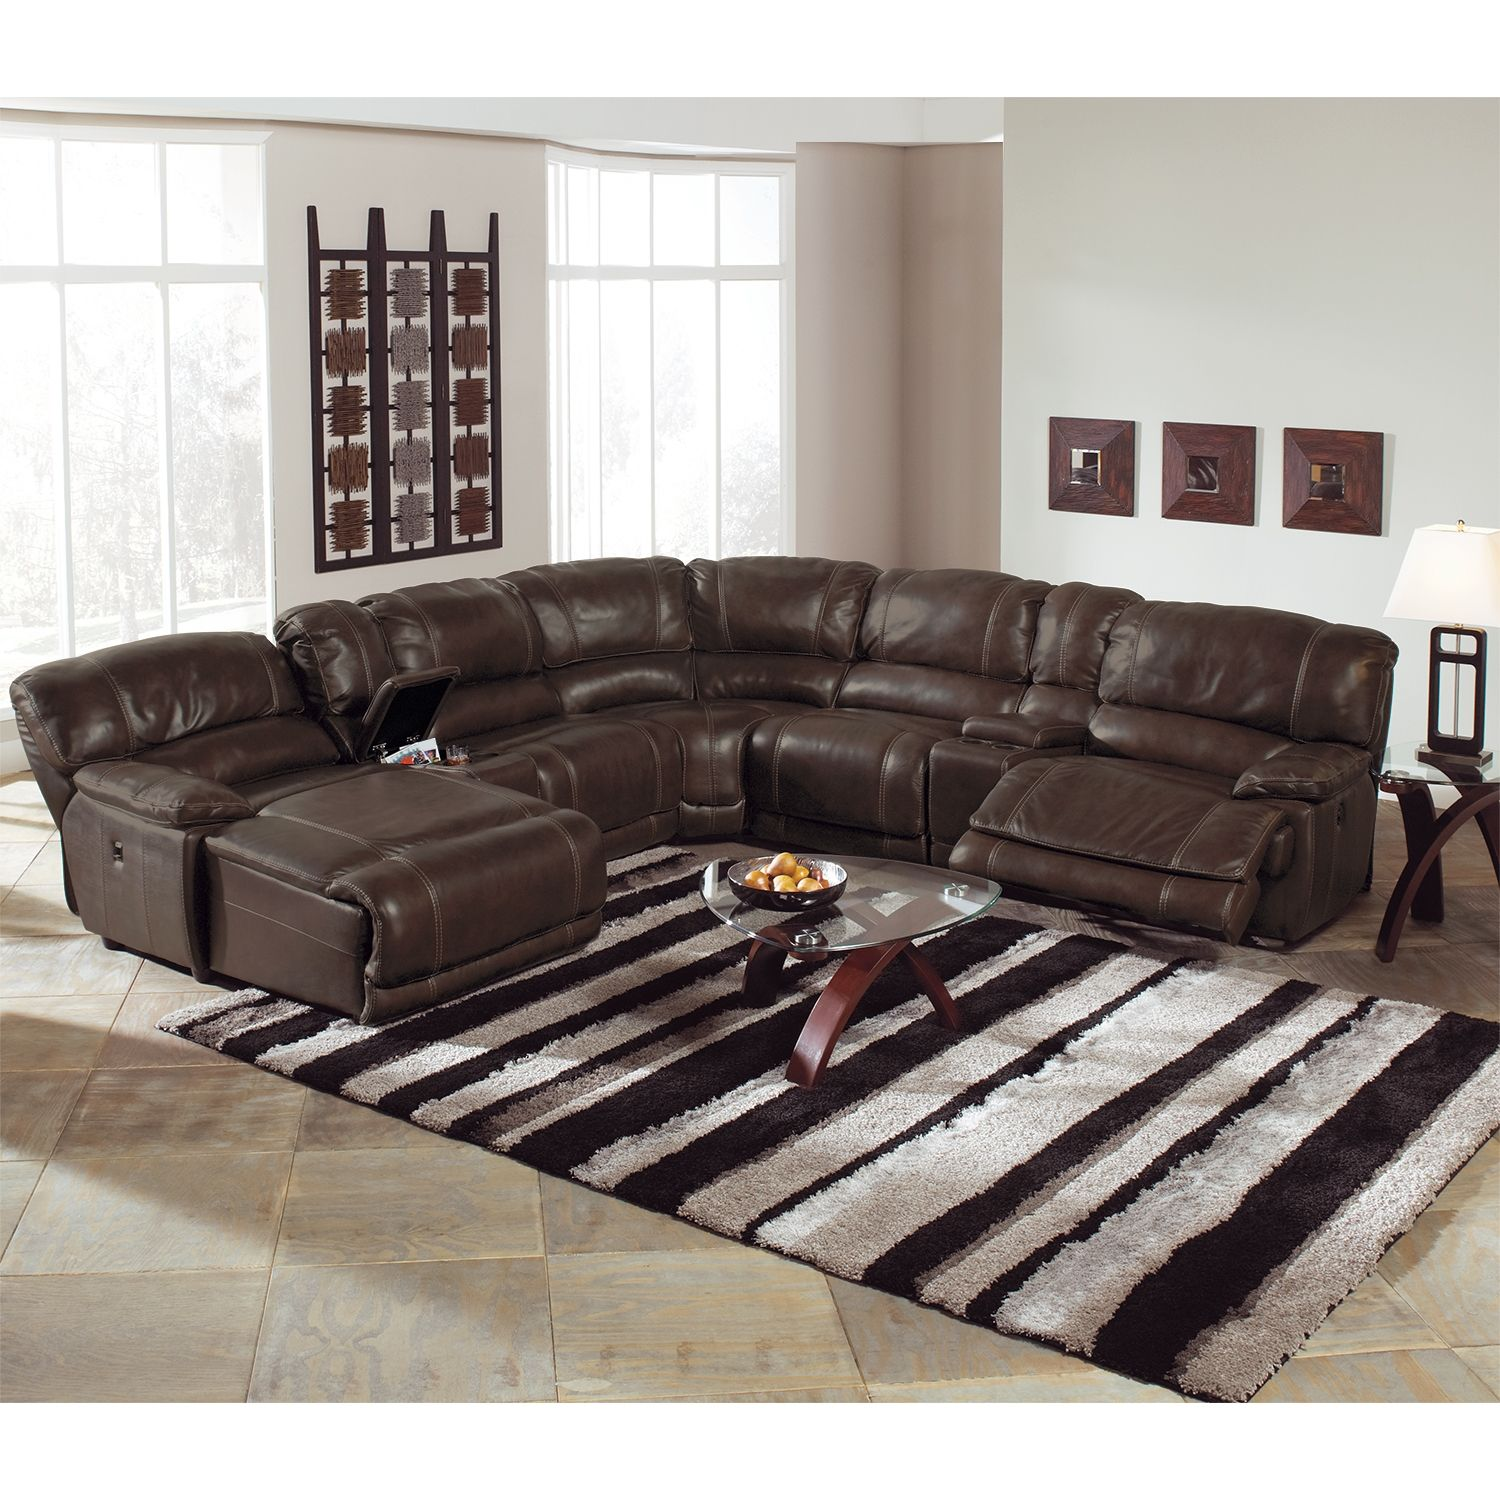 St. Malo 6 Pc. Power Reclining Sectional (Reverse) | Value City Furniture : reverse sectional sofa - Sectionals, Sofas & Couches